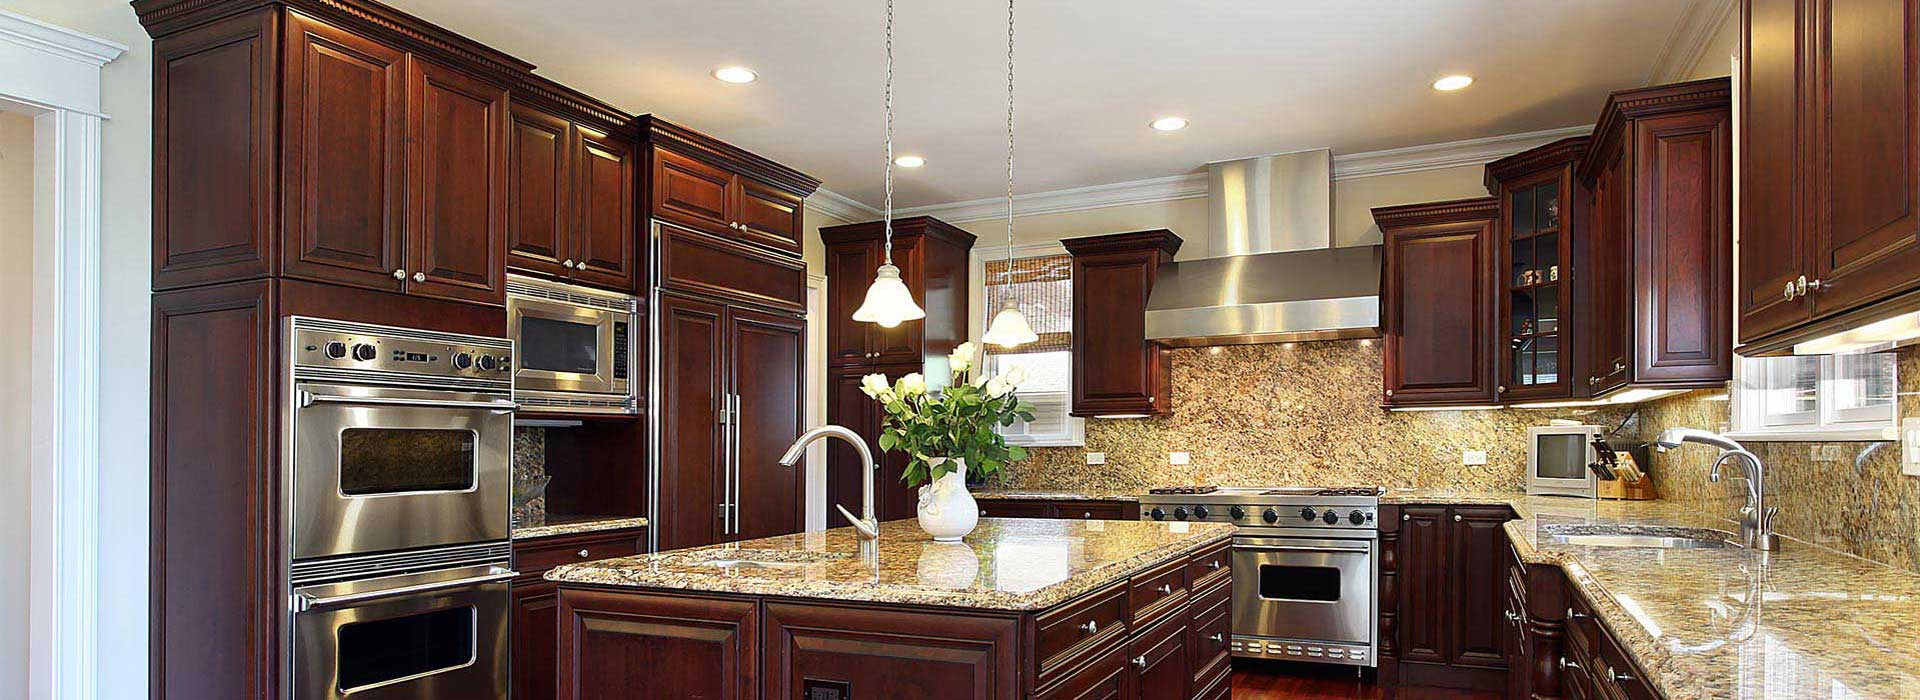 Kitchen Cabinet Refacing Reviews new look kitchen cabinet refacing